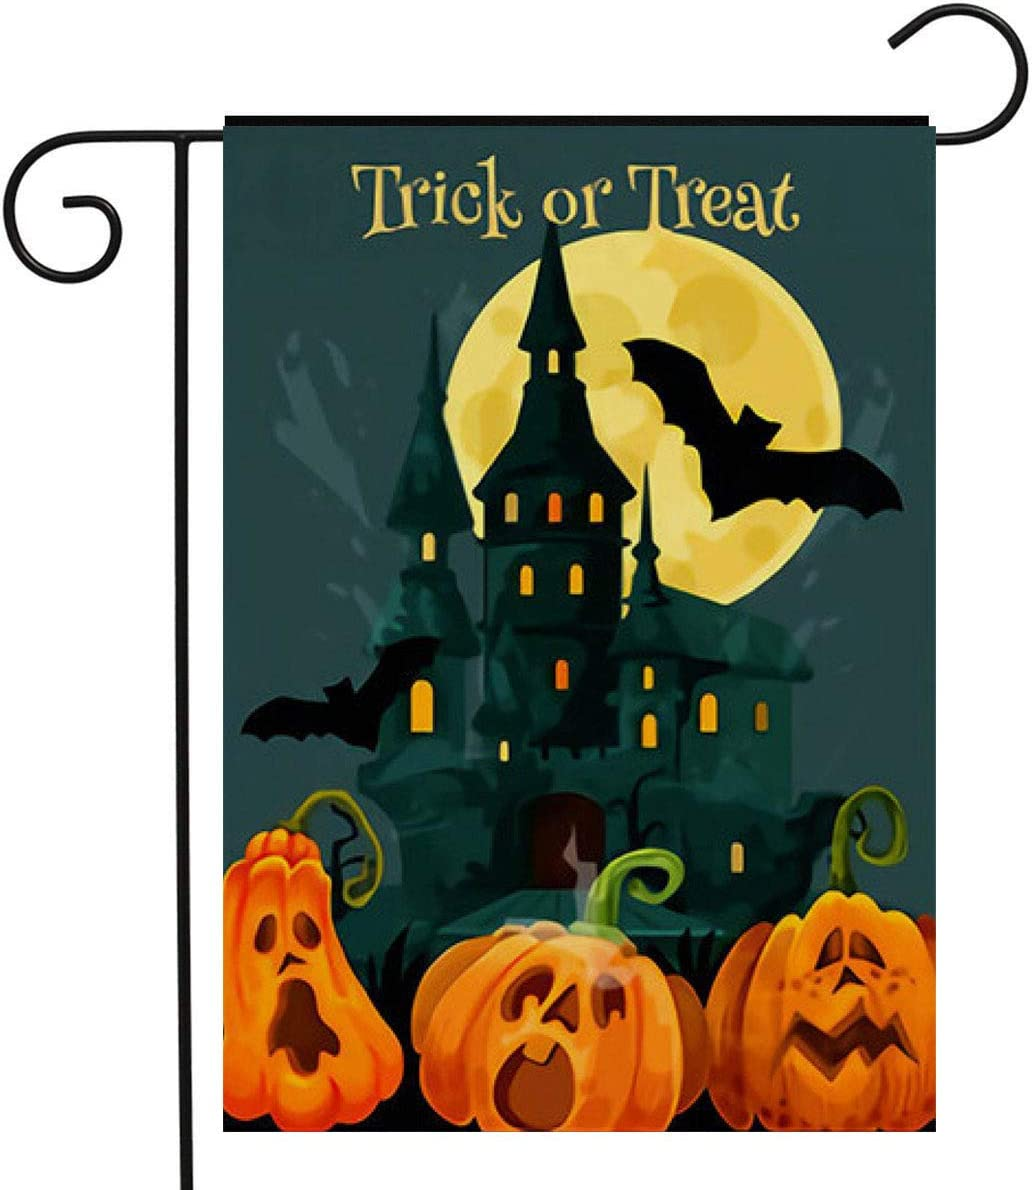 Splash Brothers Customized Happy Halloween Garden Flag Vertical Double Sided, Scary Spooky Castle Pumpkin Face Ghost Bat Yard Outdoor Lawn Decorations Garden Flag 12.5 x 18 Inch (Halloween Set 5)